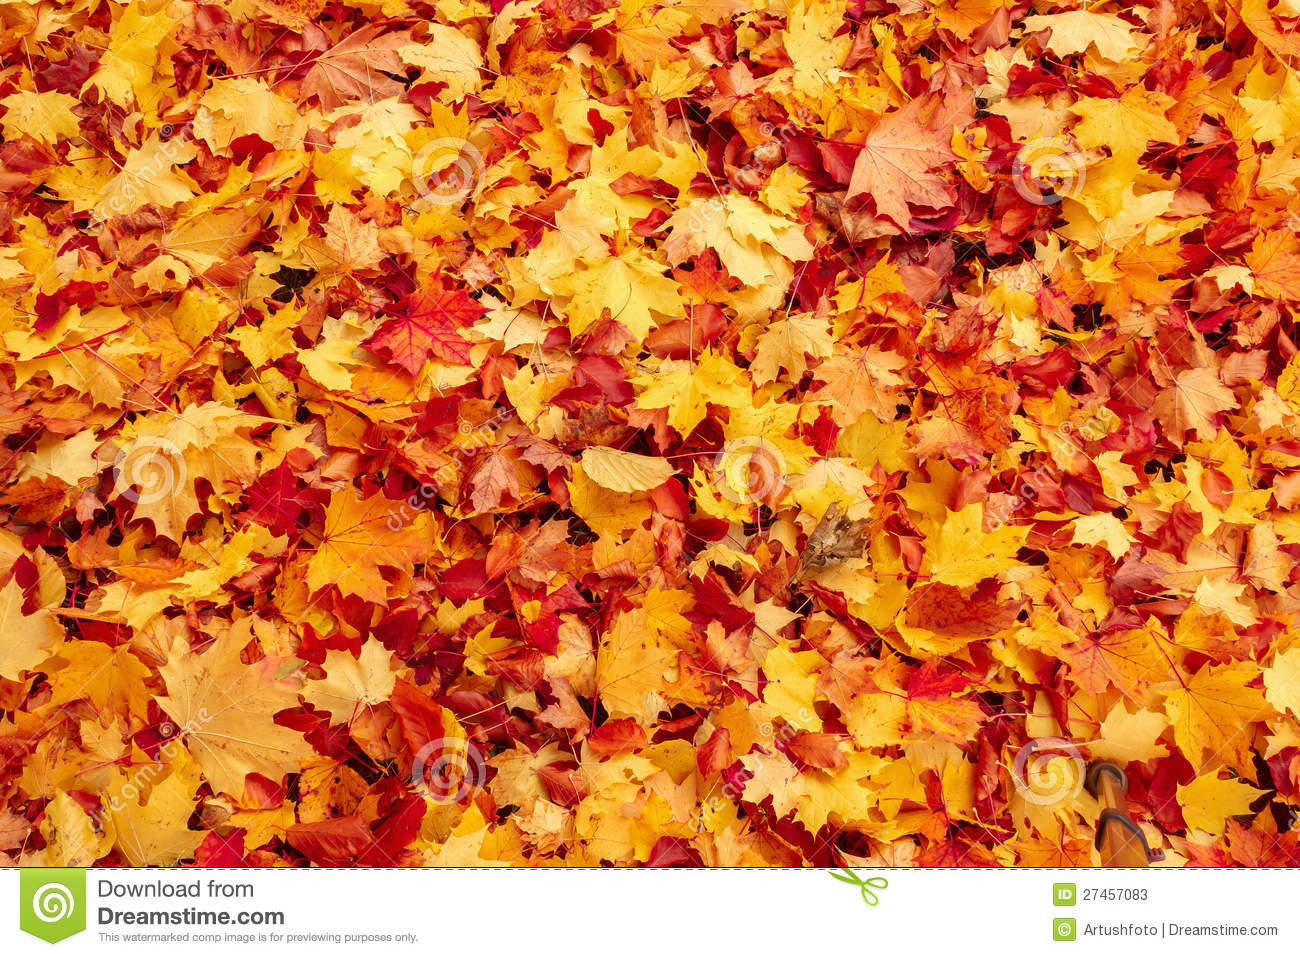 Fall Leaves Wallpaper Windows 7 Fall Orange And Red Autumn Leaves On Ground Stock Image